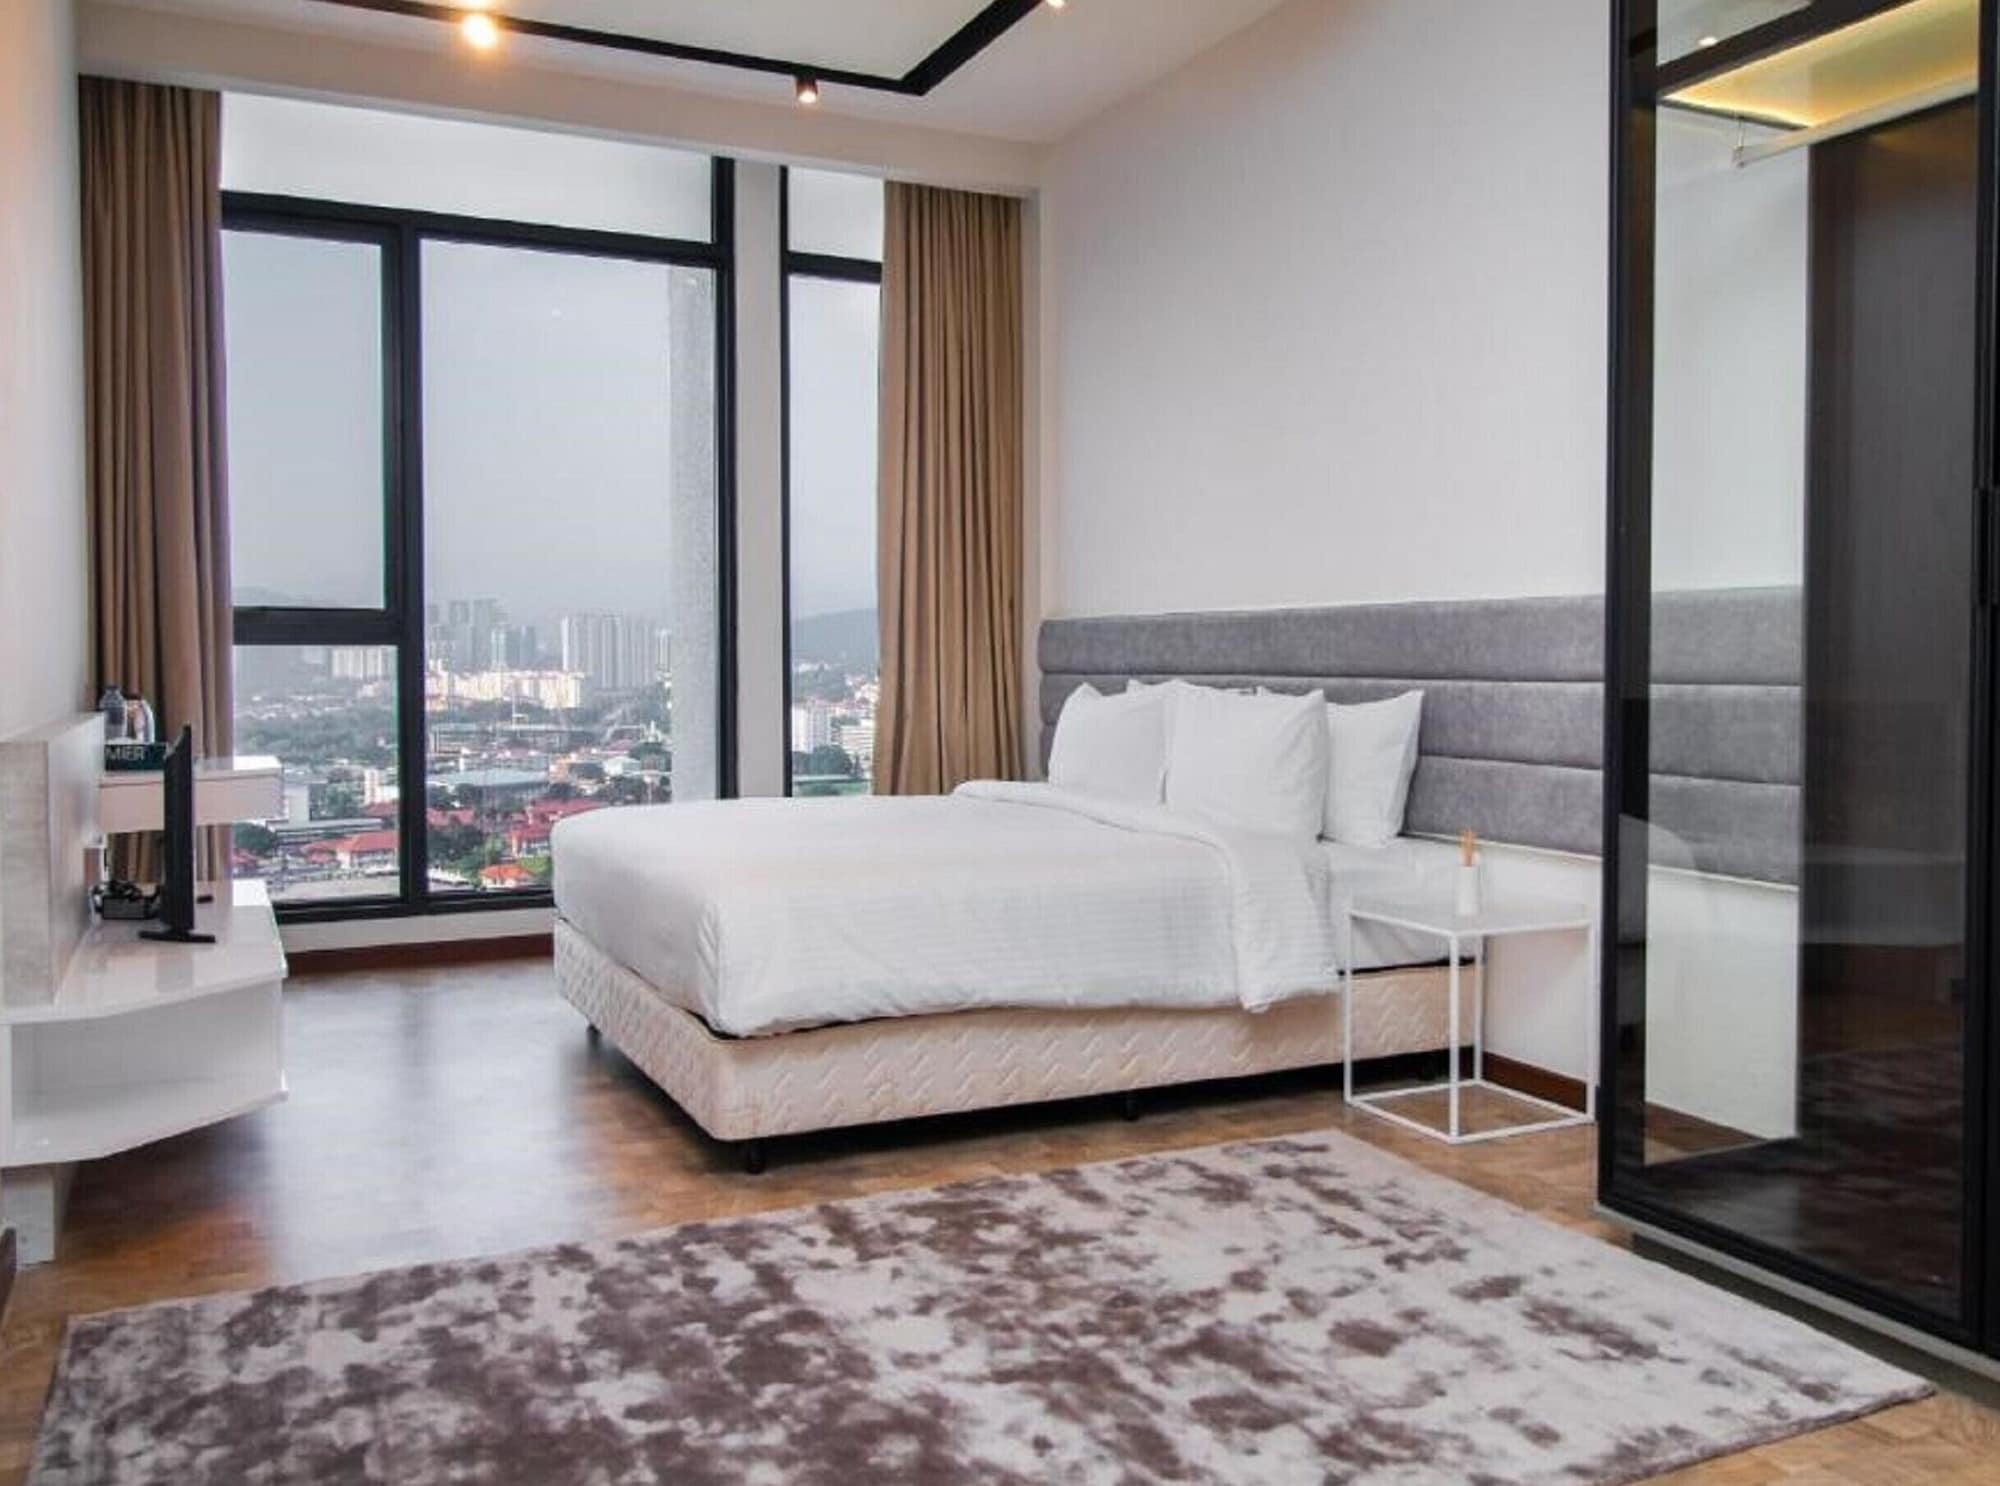 Expressionz Starlight Suites by MyKey Global, Kuala Lumpur